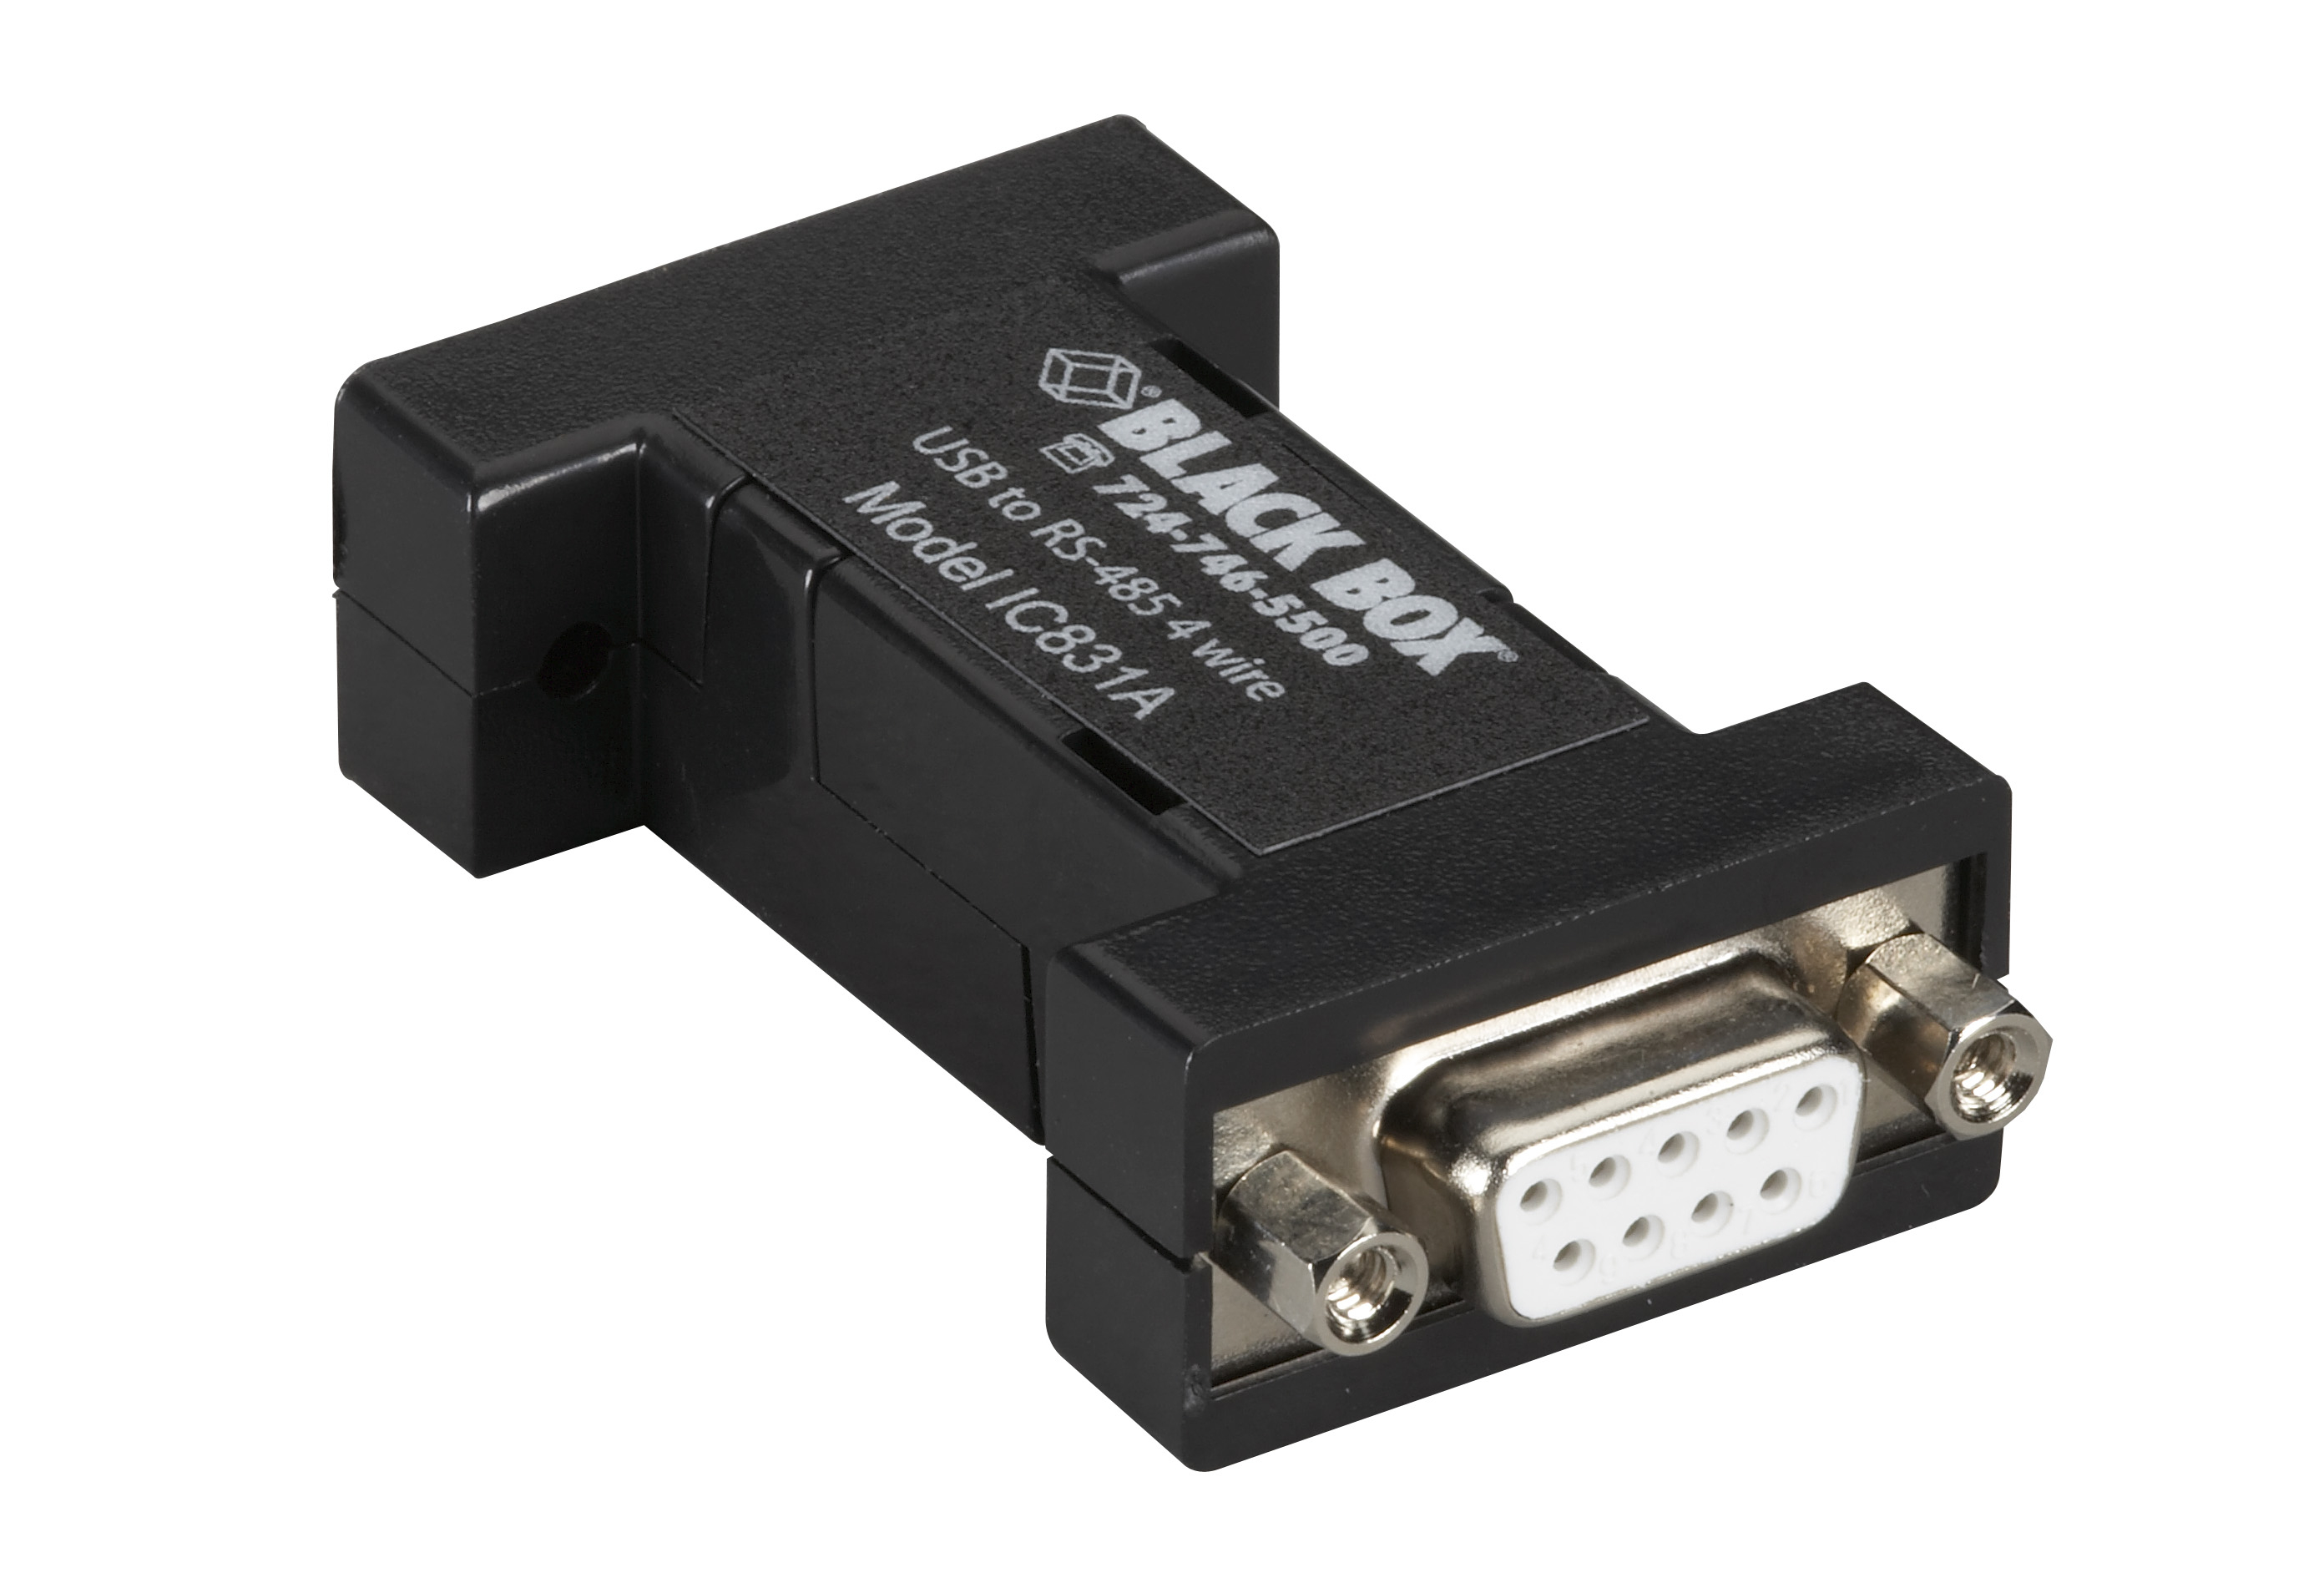 Usb 2.0 To Rs485 4-Wire Converter, Db9, 1-Port | Black Box - Usb-Rs485-We Wiring Diagram